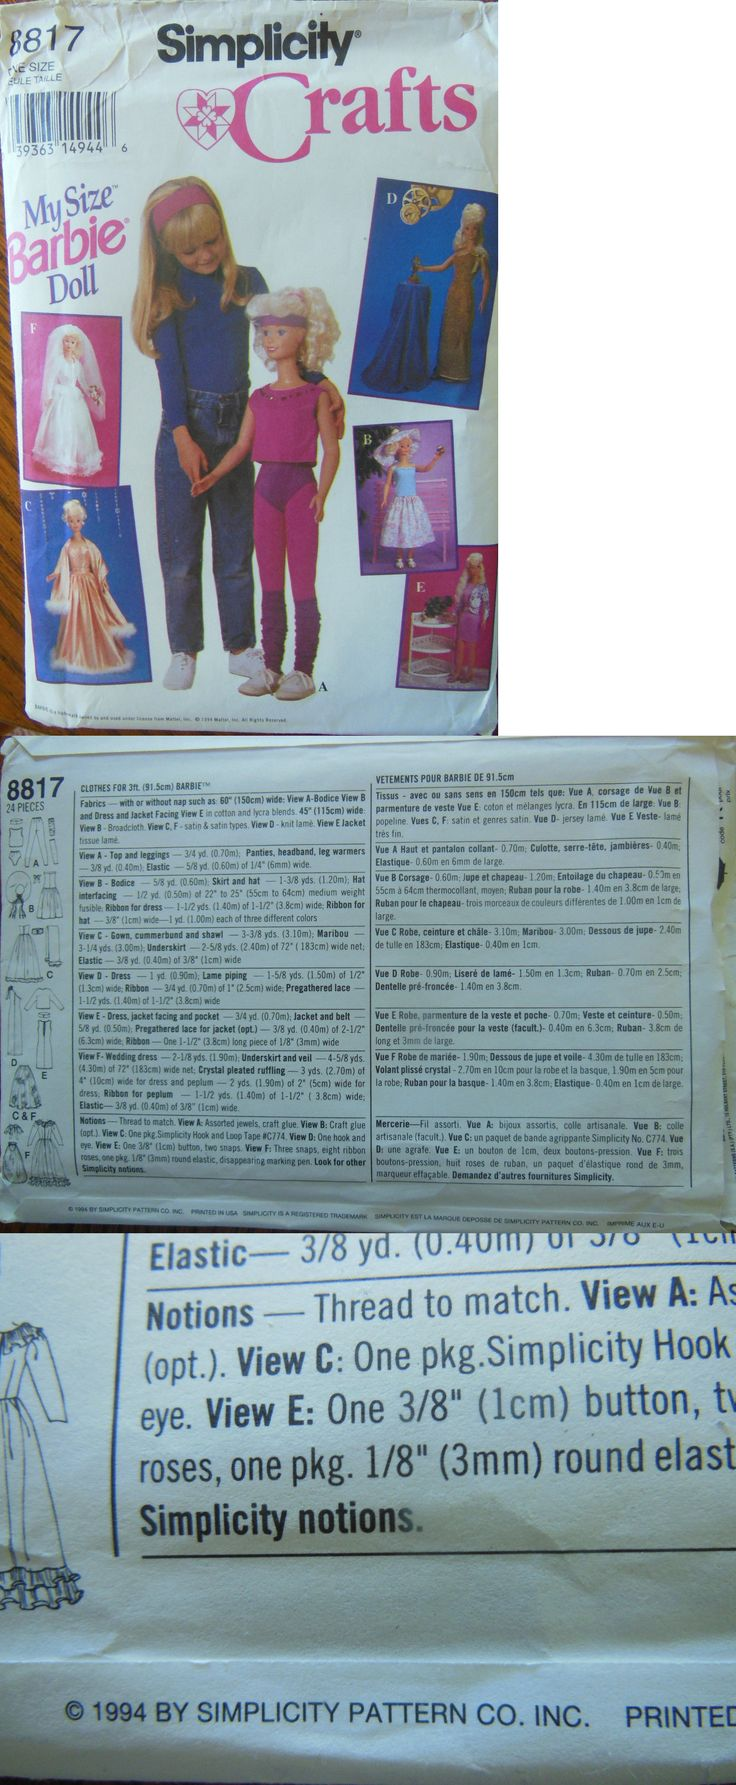 Sewing Patterns 28174: Original Uncut 1994 Simplicity #8817 3 Ft My Size Barbie Clothes Sewing Pattern -> BUY IT NOW ONLY: $34.99 on eBay!